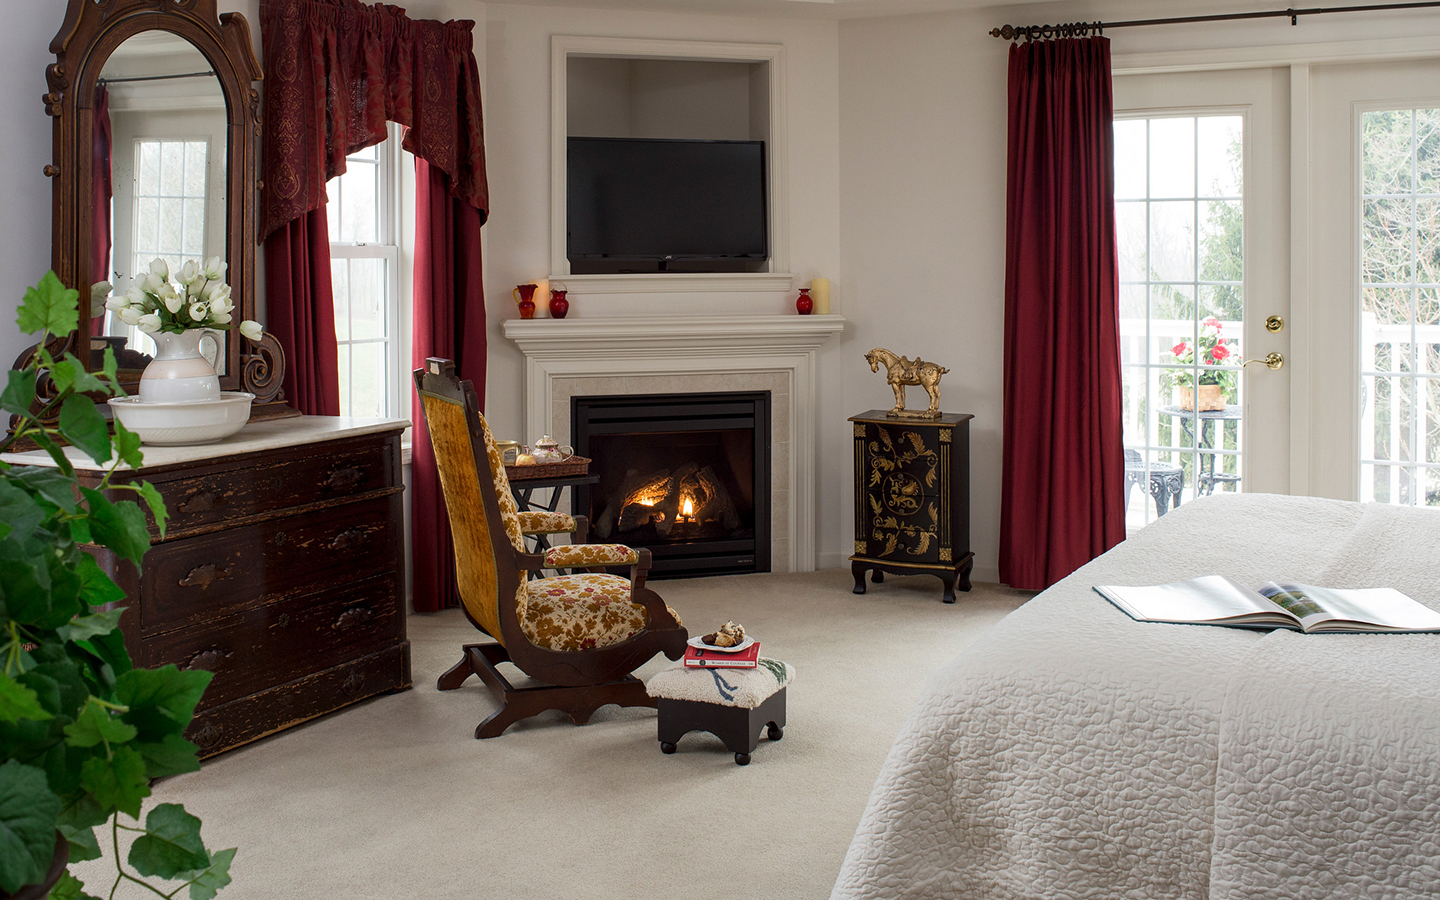 A comfortable antique bed and antique chair sit next to a warm fireplace